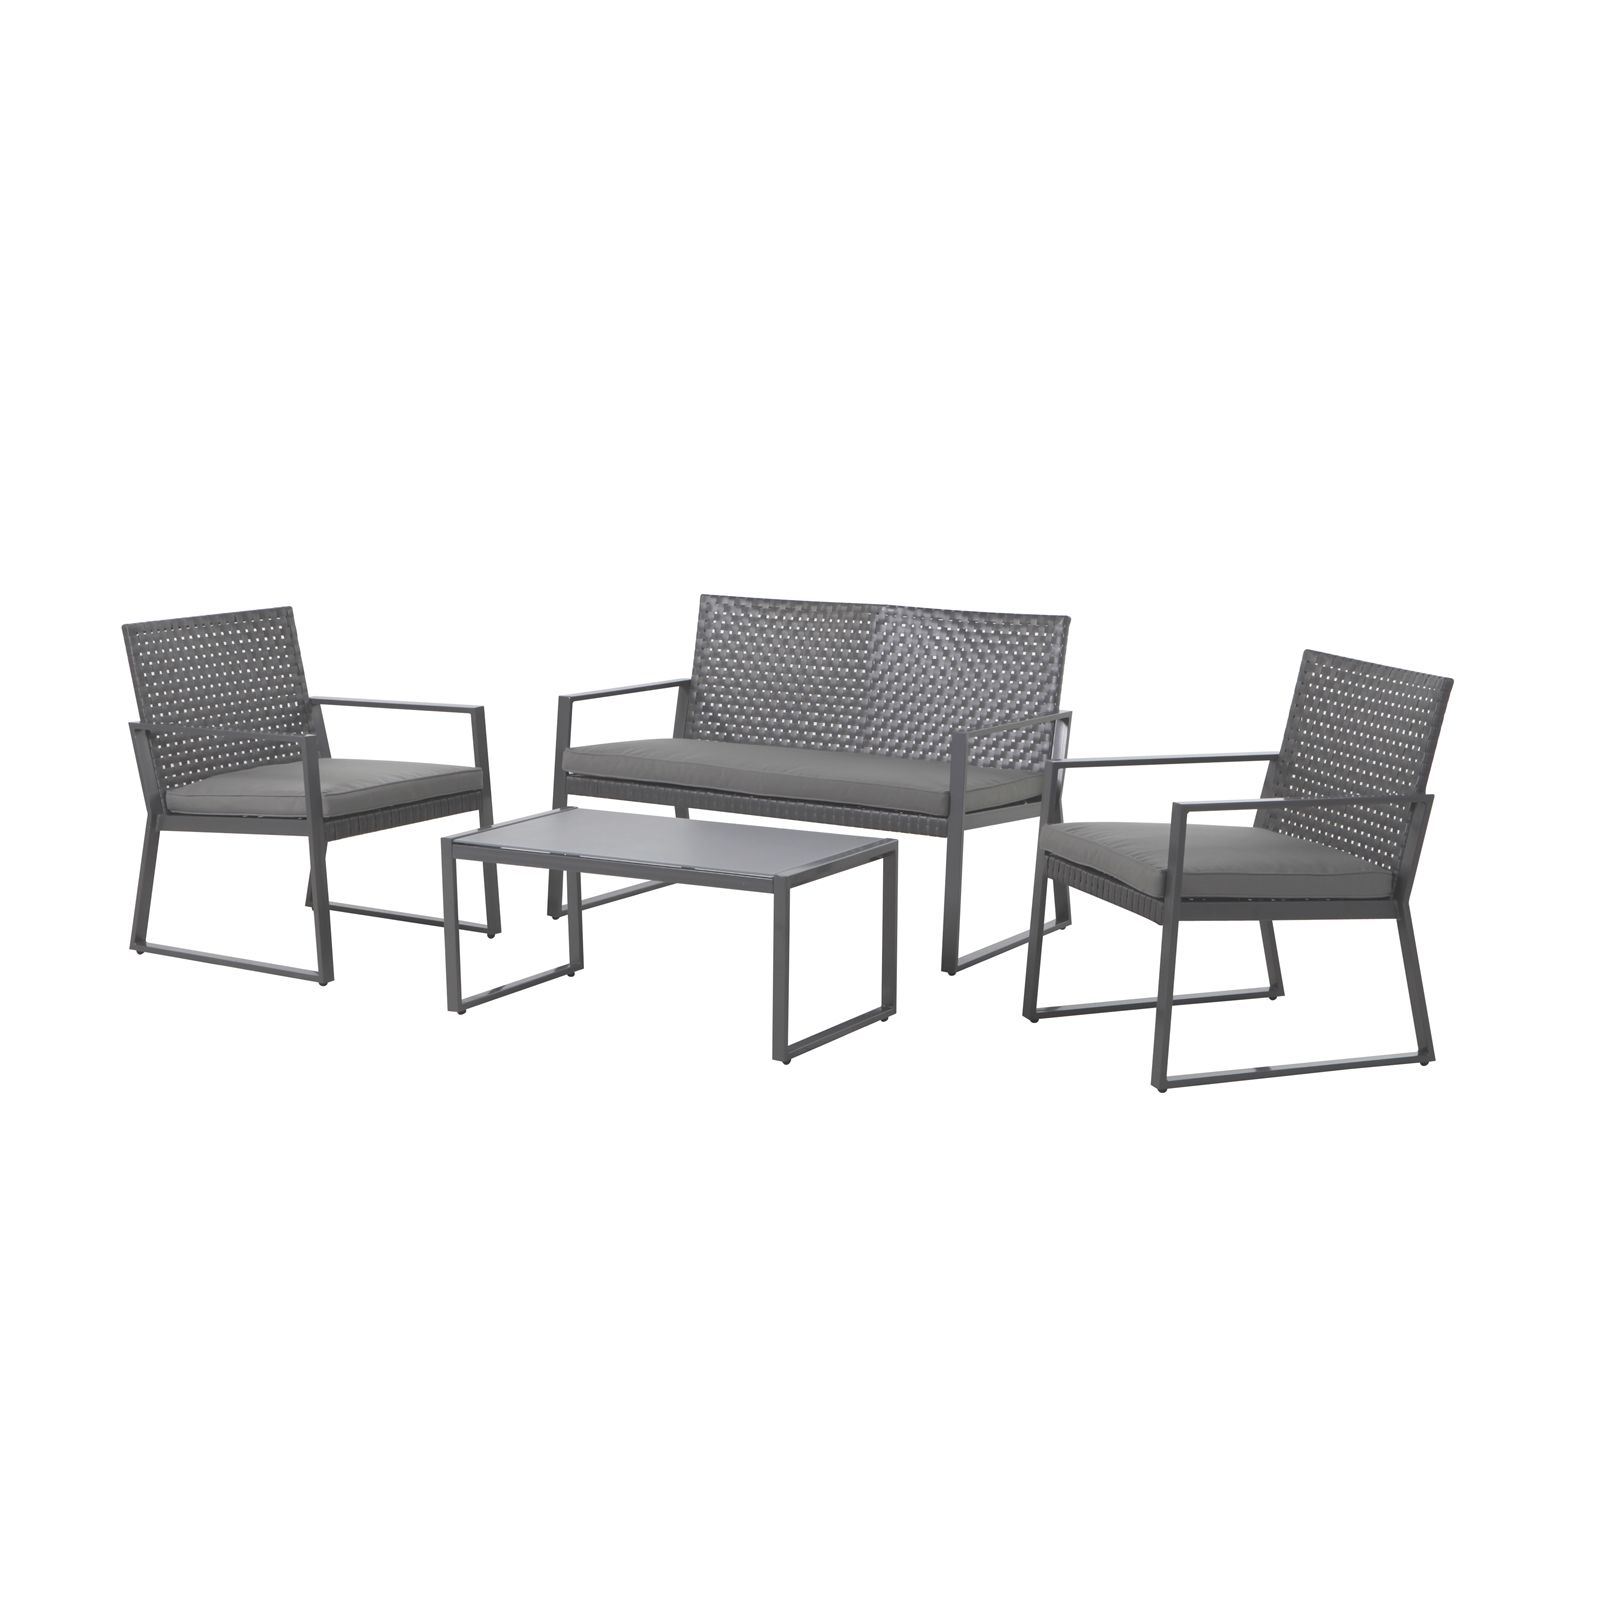 Find Marquee 4 Piece Silverleaves Lounge Setting at Bunnings ...